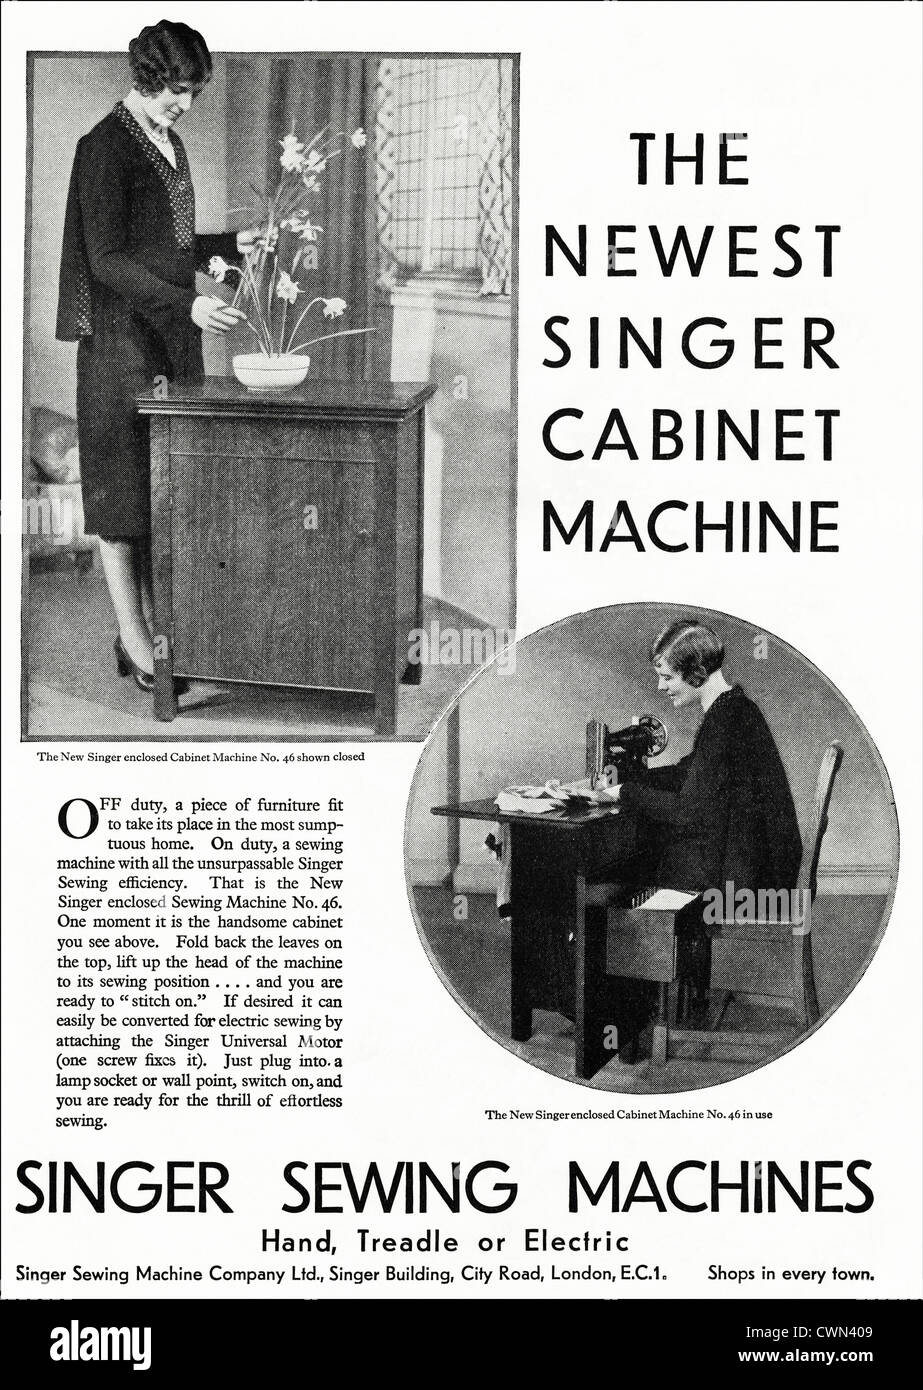 Agree, this Singer sewing vintage ads